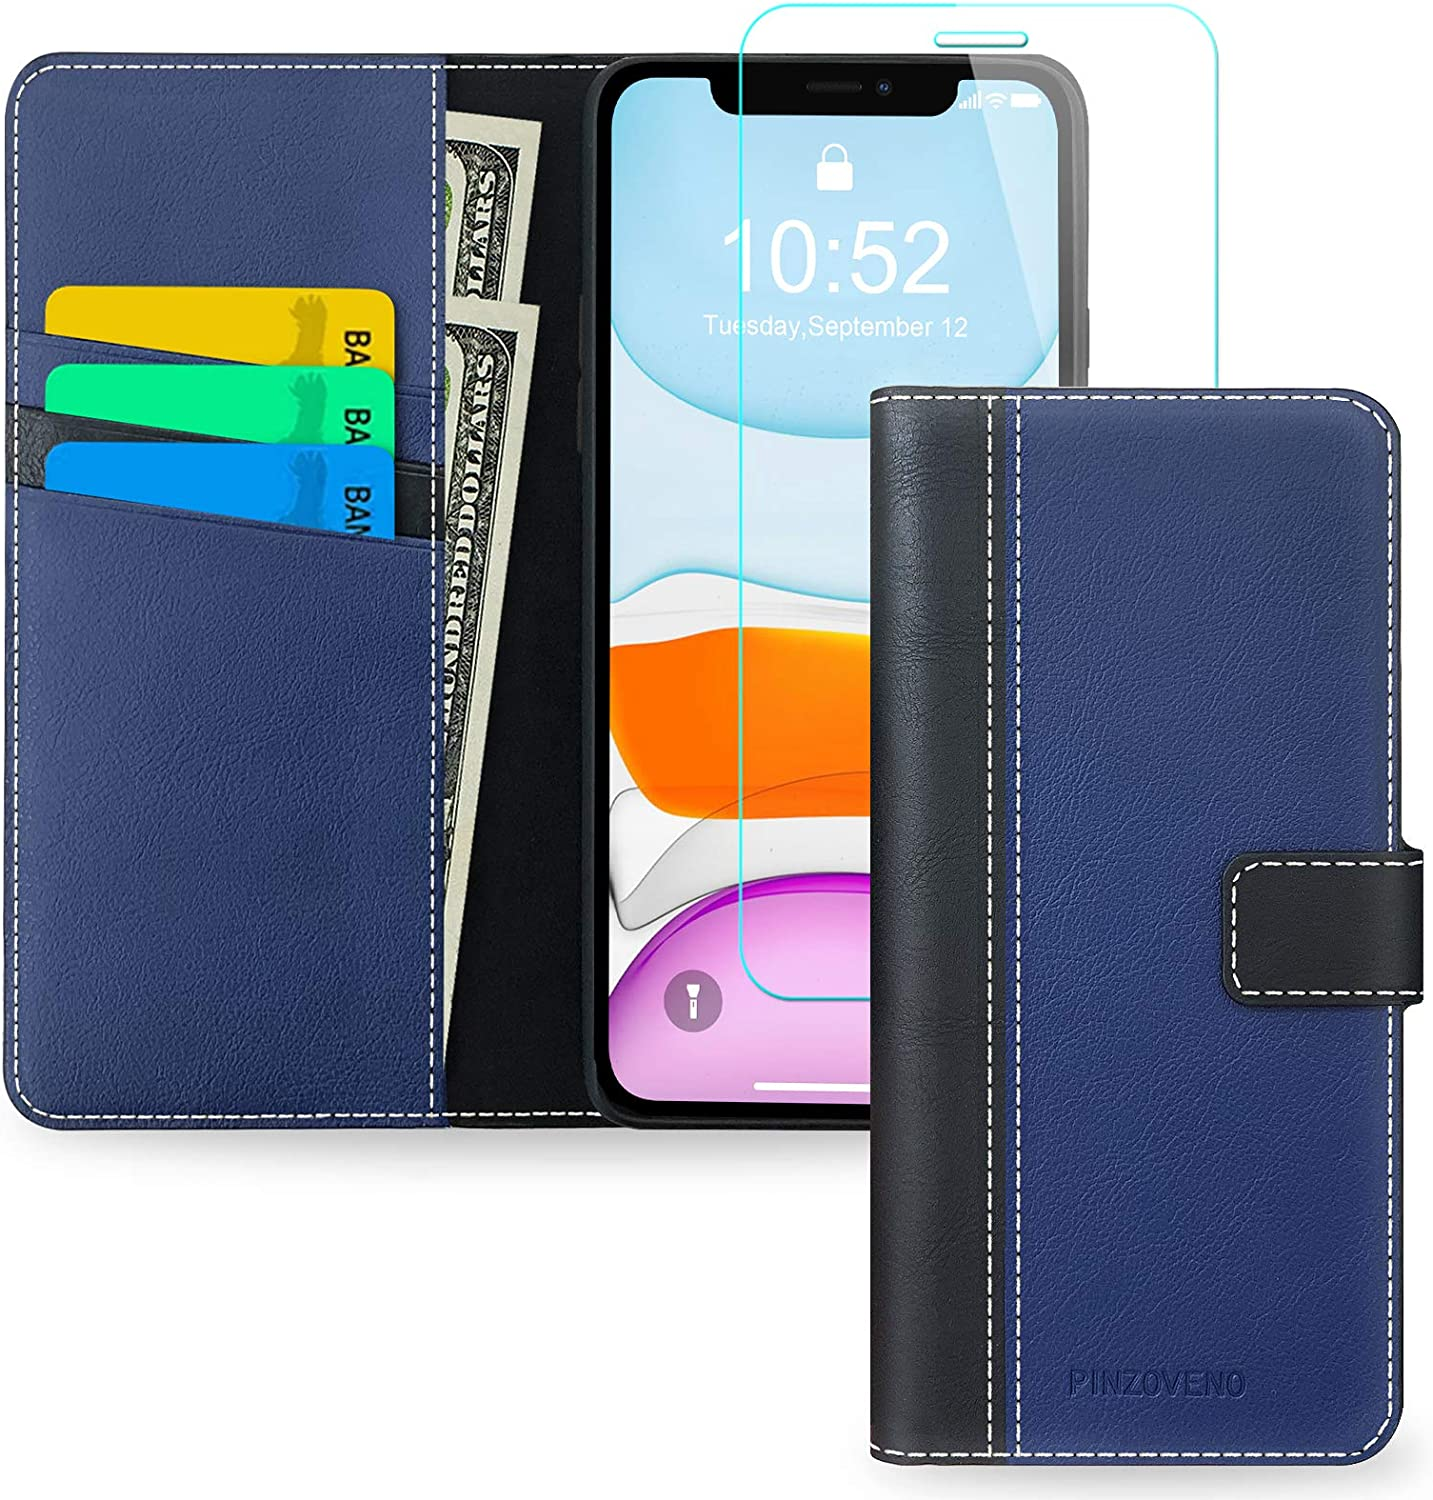 Pinzoveno iPhone 11 Wallet Case, Flip Phone Cover with Card Holder and Screen Protector Kickstand PU Leather Folio Funda Cases for iPhone 11 - Black&Blue